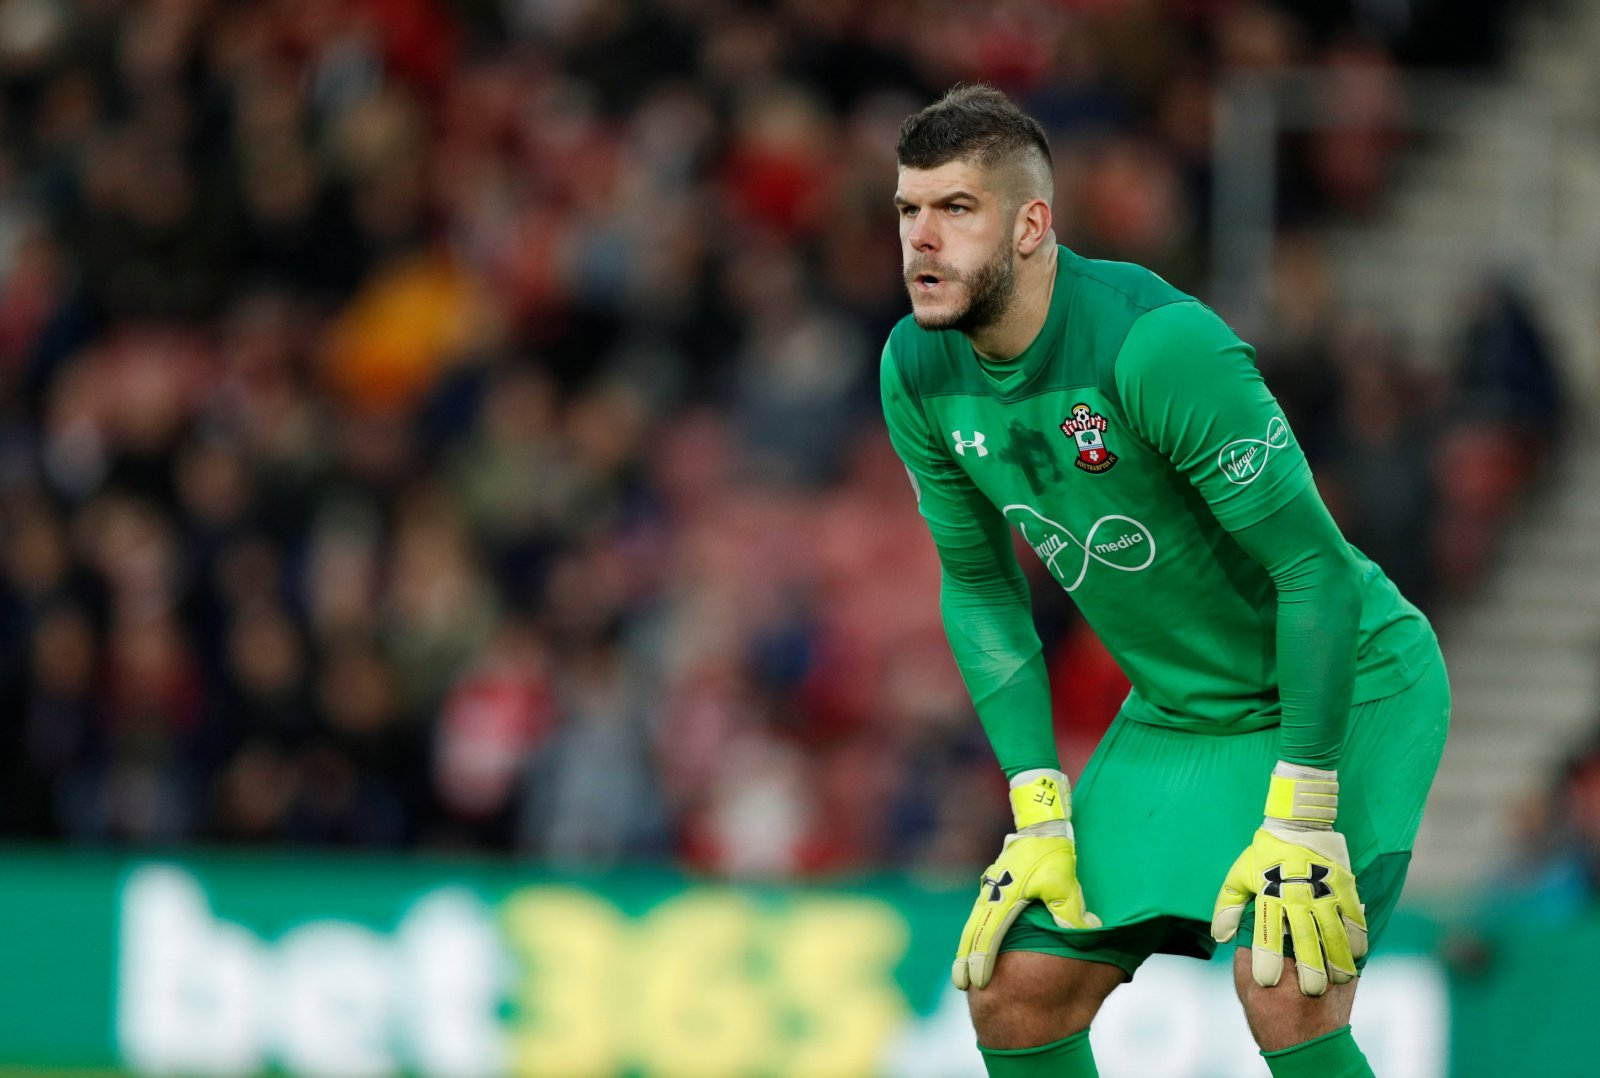 Southampton yet to receive approach for Fraser Forster